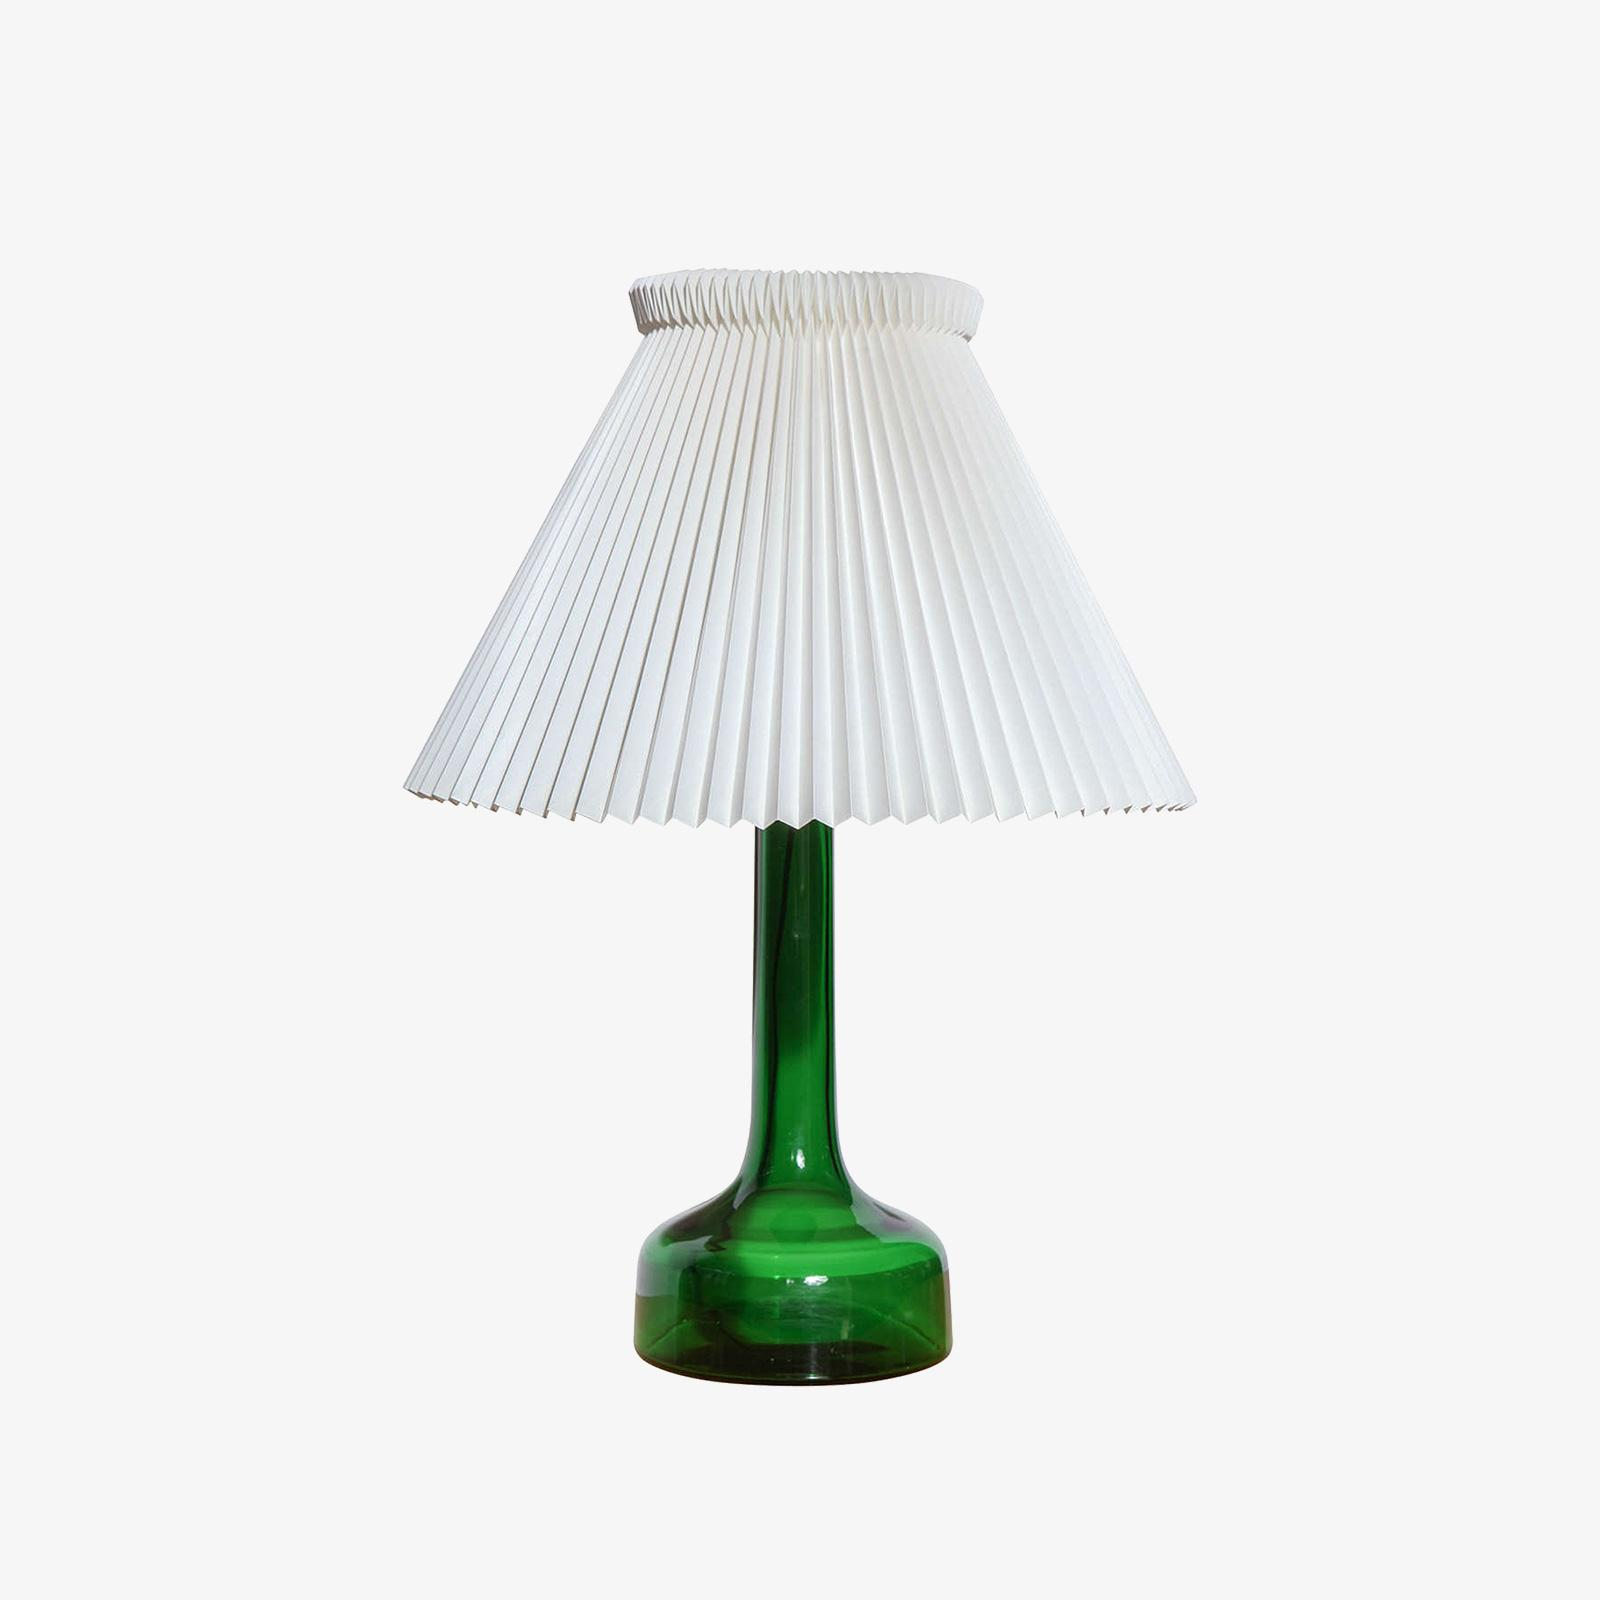 Superior Gunnar Biilmann Petersen Le Klint Green Glass Table Lamp